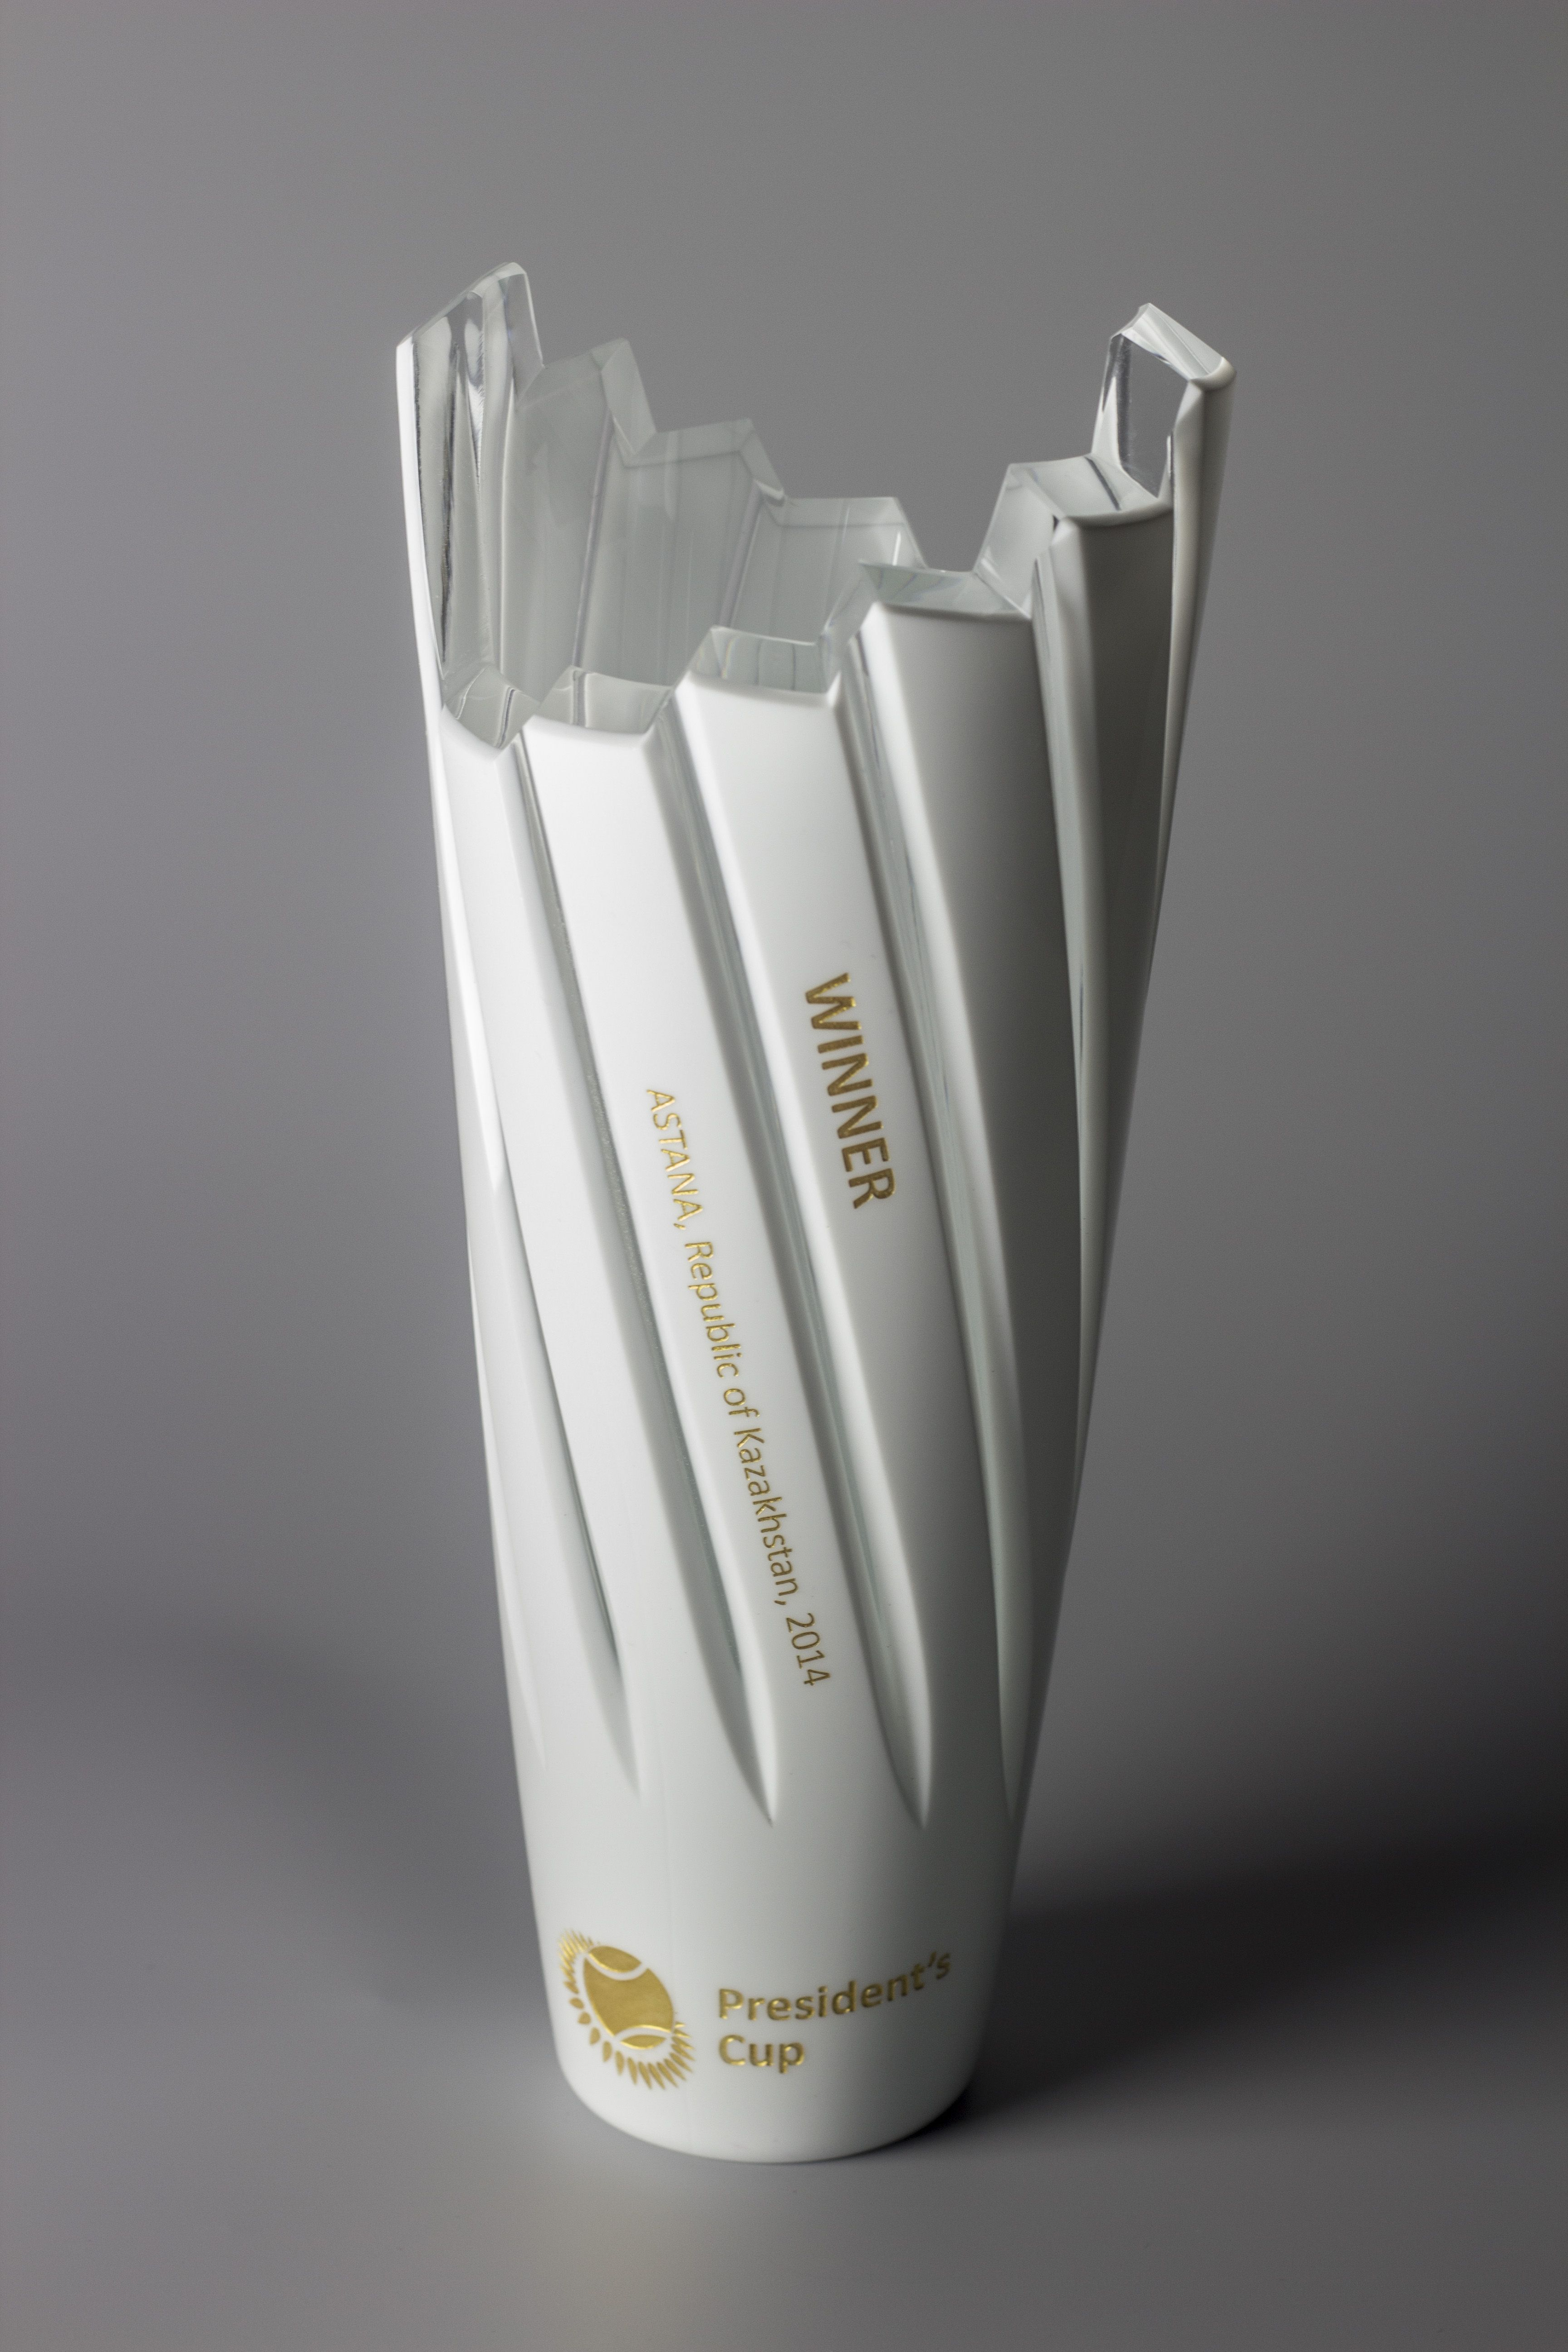 Unity tall modern trophy creative design beautiful materials not glass - Lasvit Creates Unique Crystal Trophy For The President S Cup Tennis Trophy In Astana